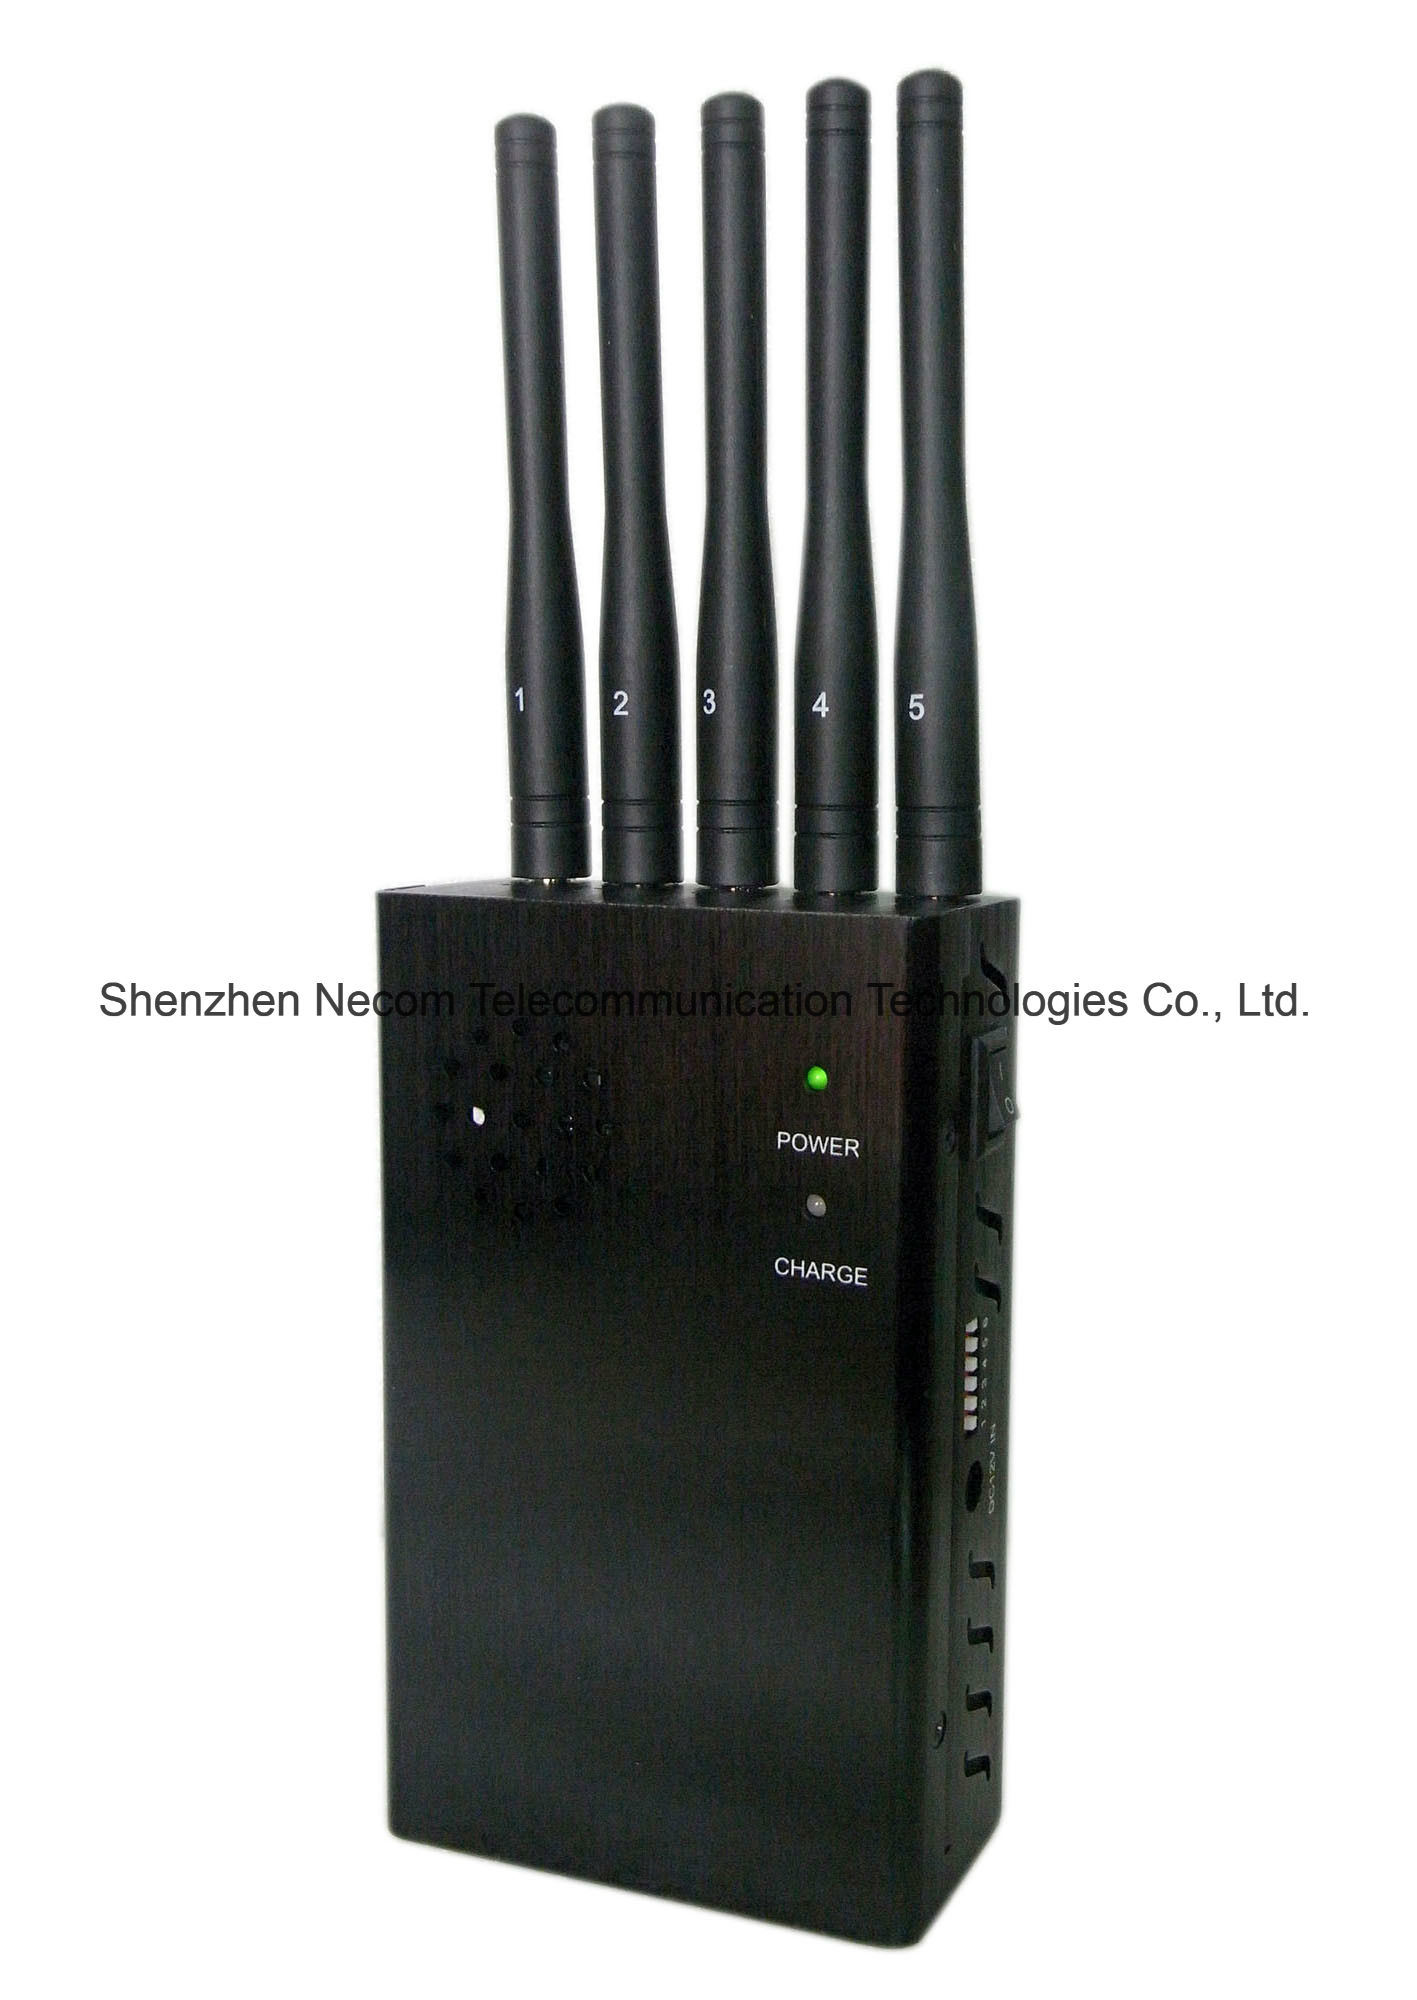 mobile jammer delhi district - China 5 Antenna Big Portable Cell Jammer, Portable GPS Jammer, Portable WiFi Jammer, Jamming 2g+3G+4G+Gpsl1 - China 5 Band Signal Blockers, Five Antennas Jammers